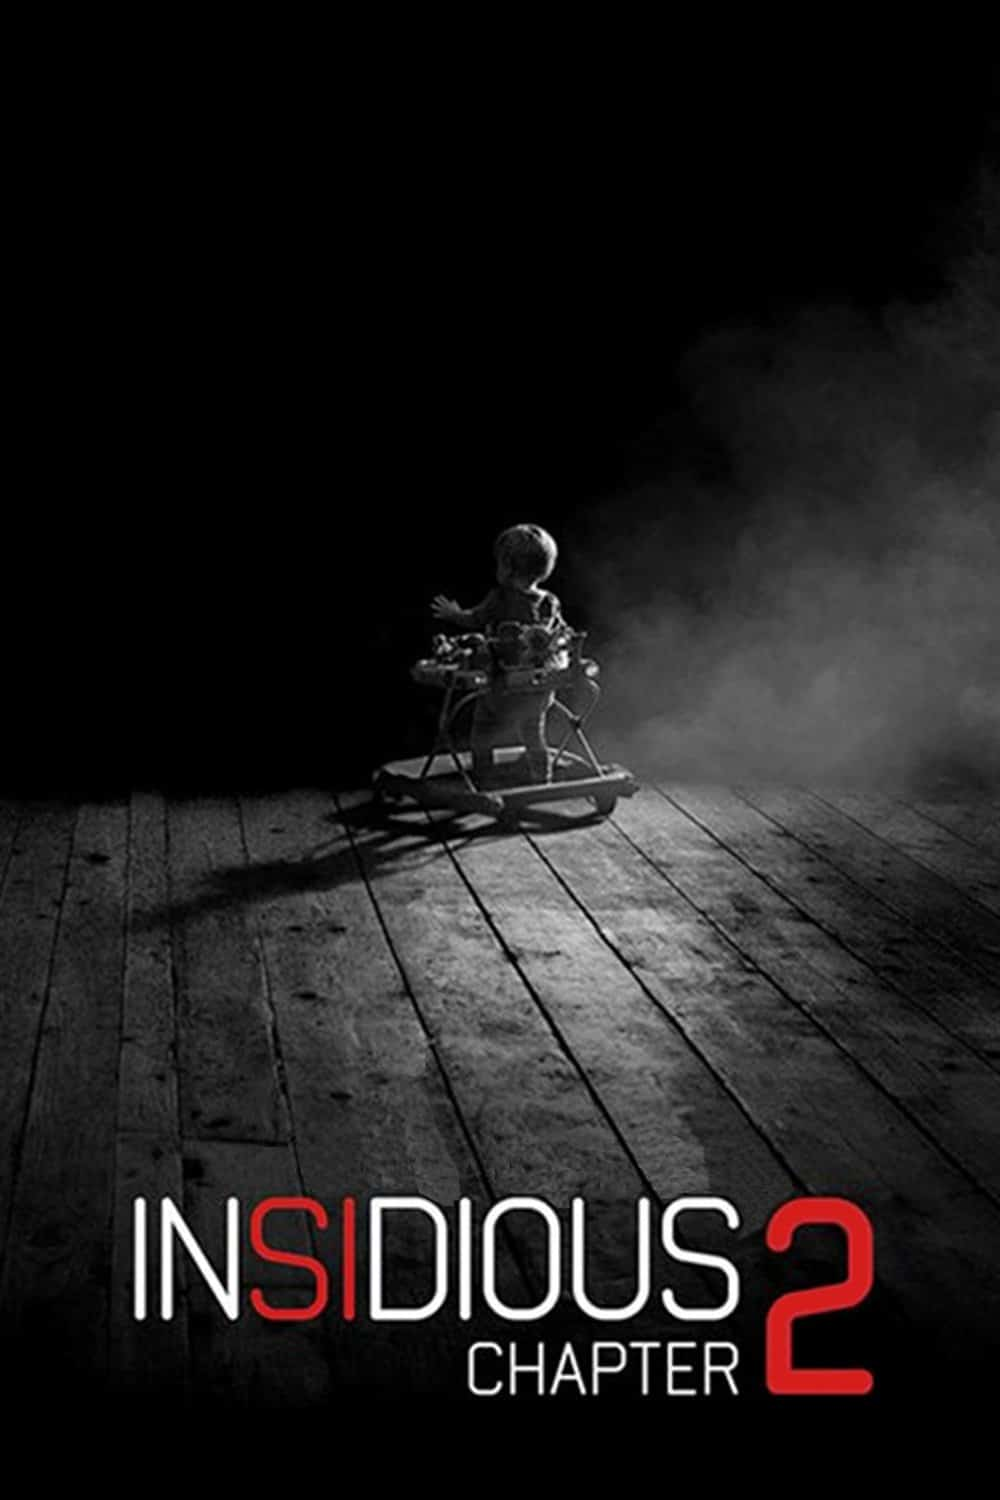 Insidious: Chapter 2, 2013